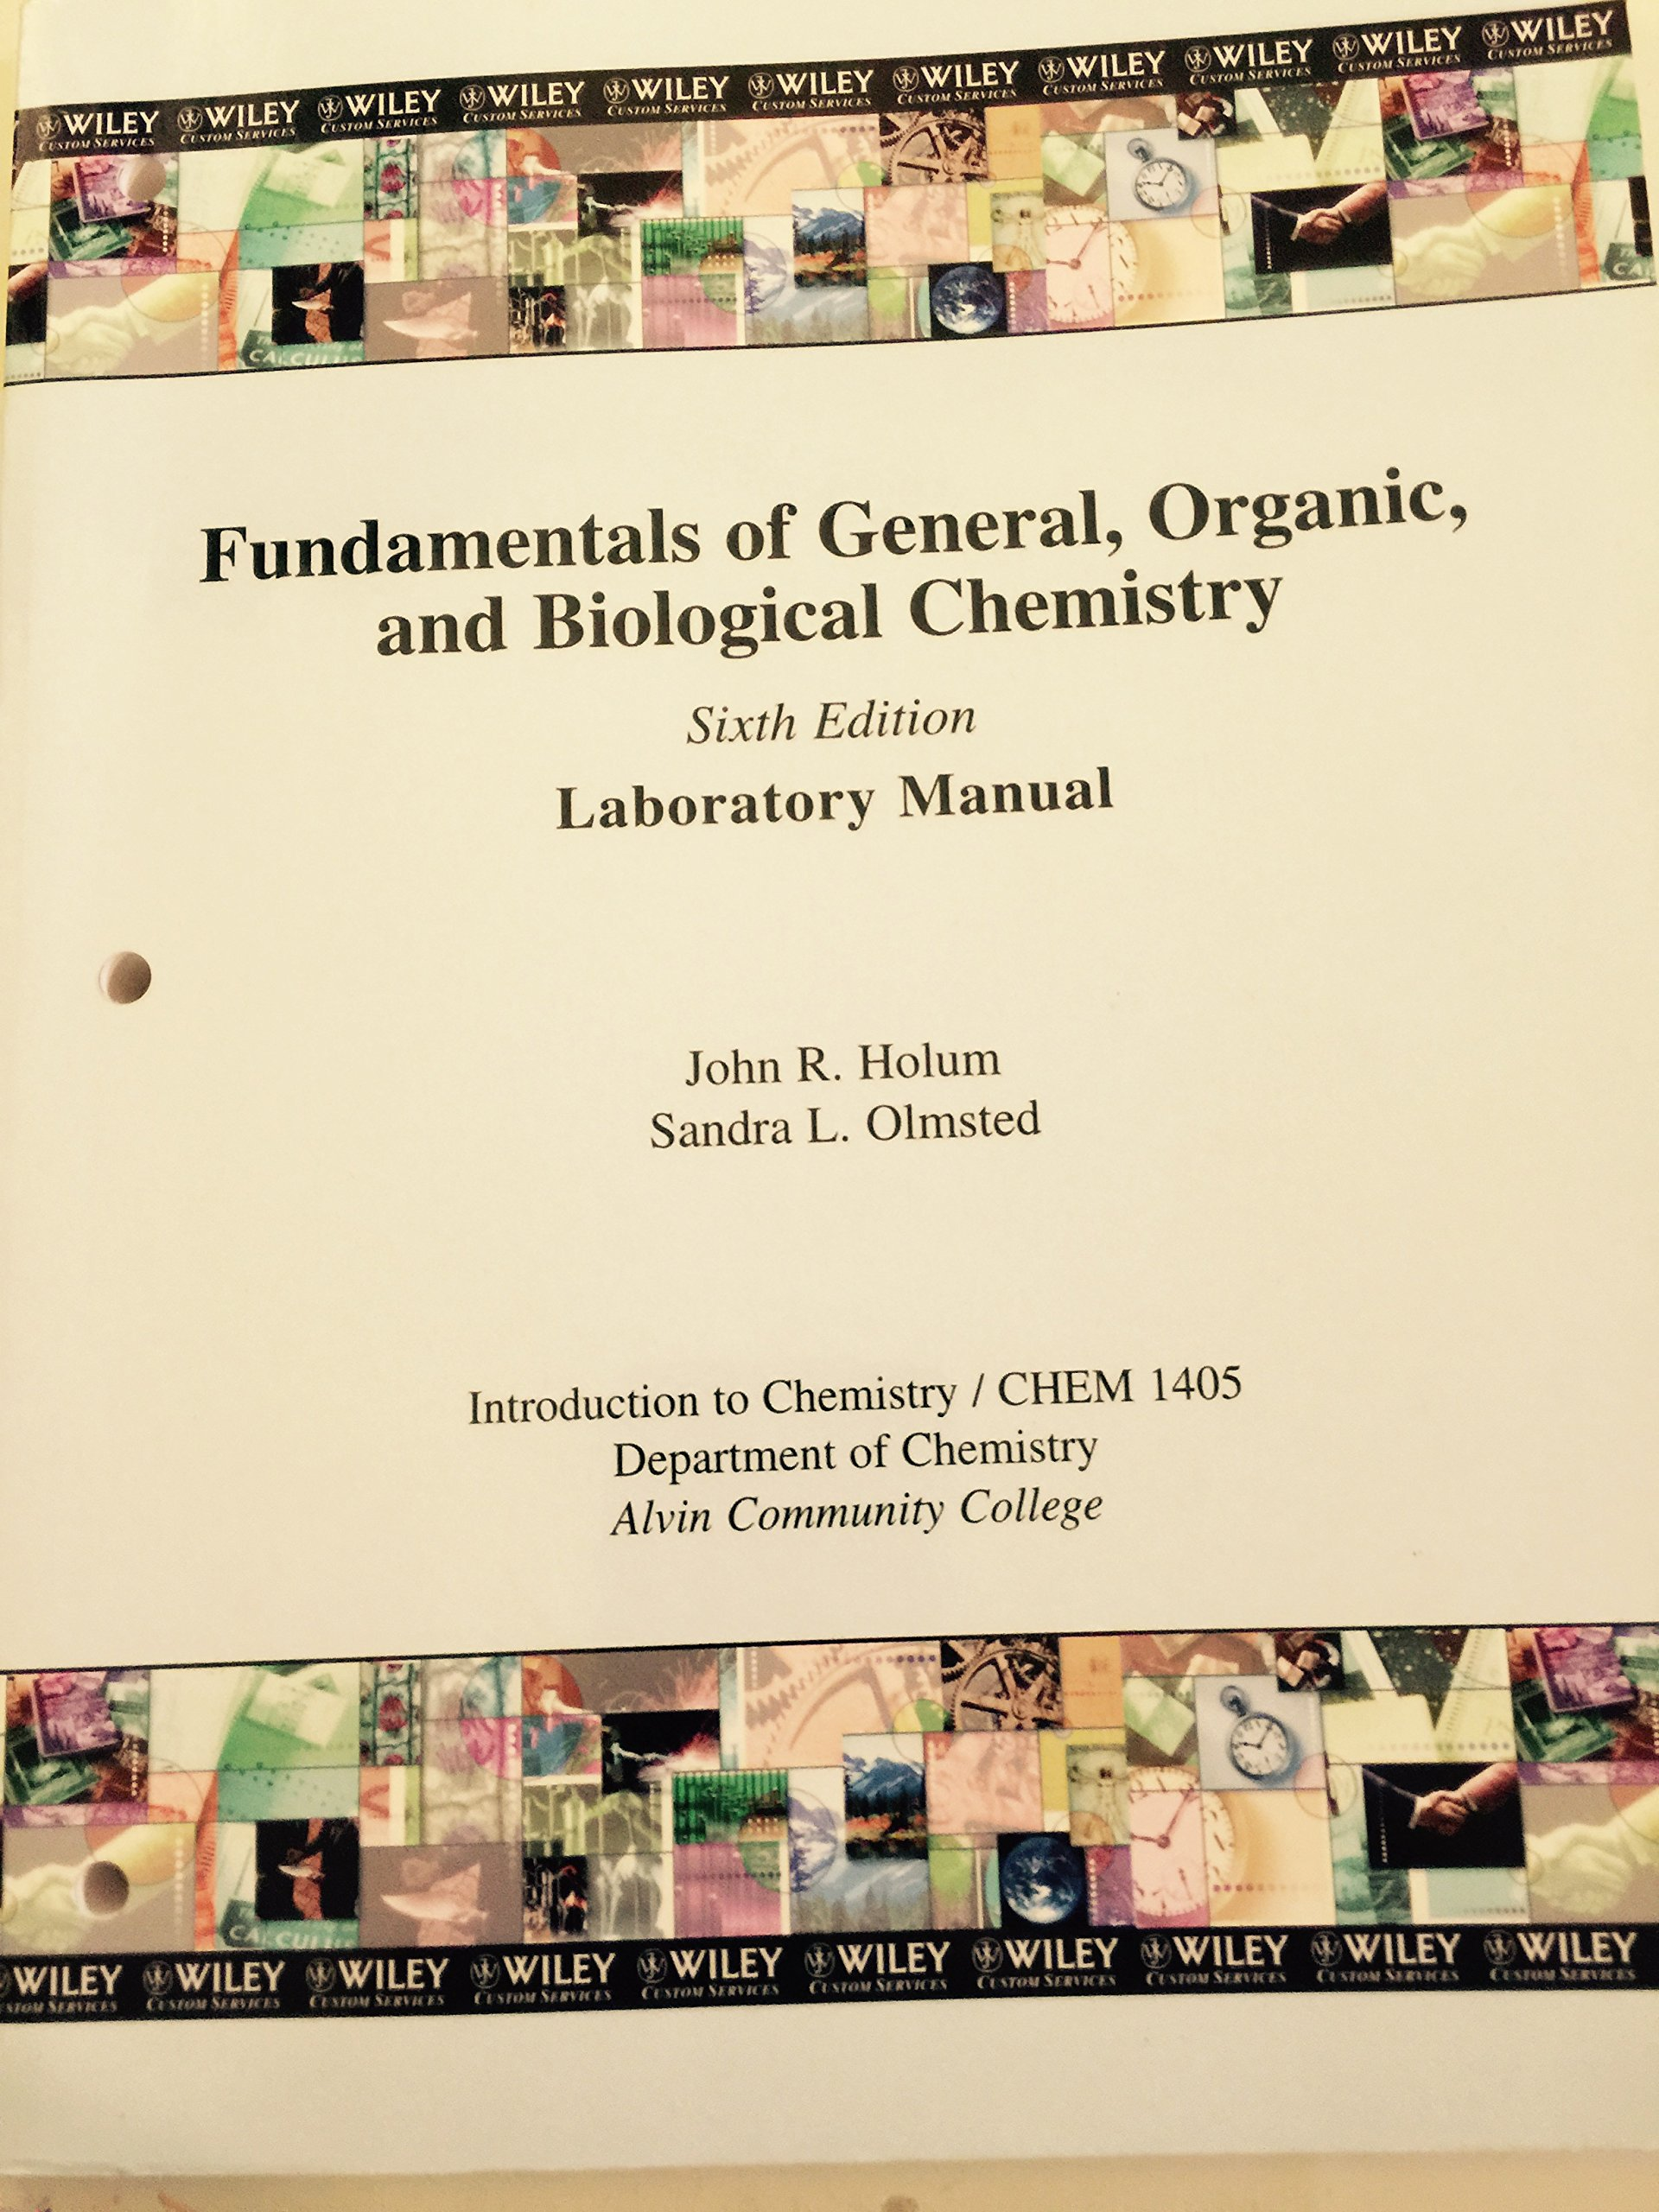 Fundamentals of General, Organic, and Biological Chemistry, 6th Edition, Laboratory  Manual: Amazon.com: Books